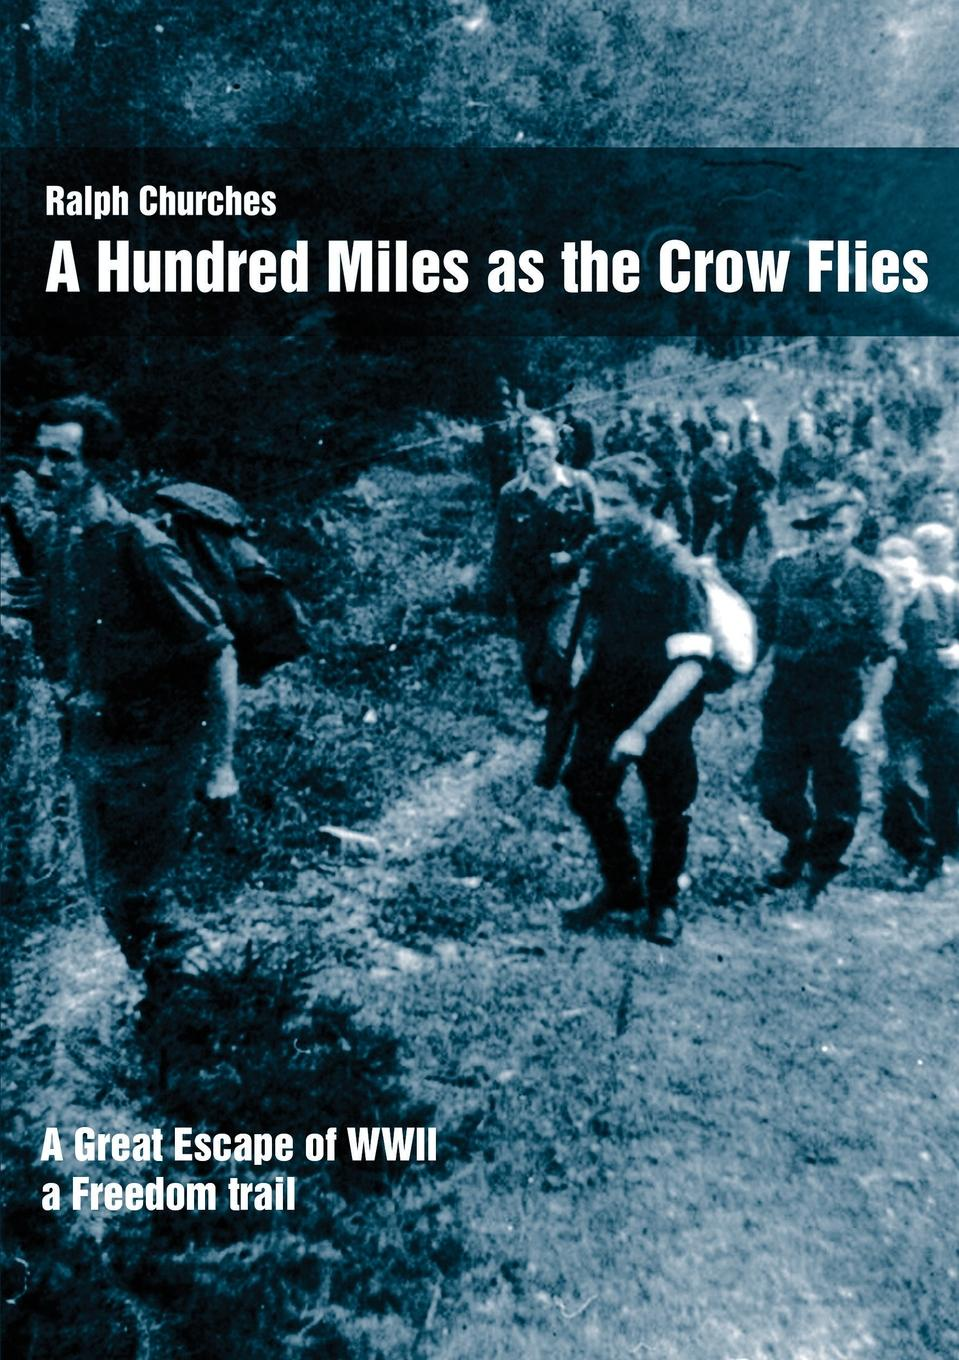 Ralph Churches A Hundred Miles As The Crow Flies. A Great Escape of WWII музыка ninety one